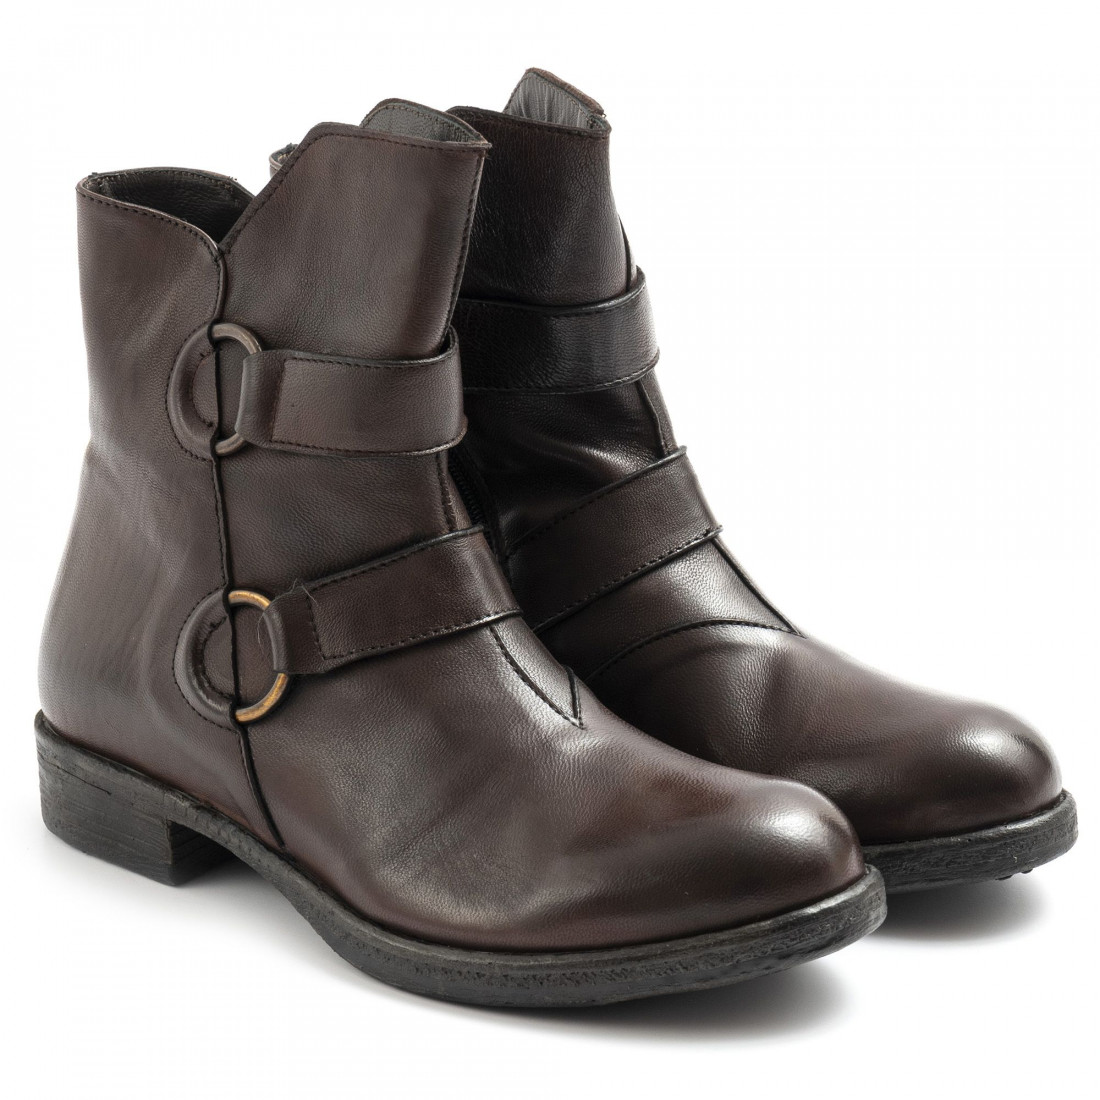 booties woman sangiorgio d415softy t moro 7781